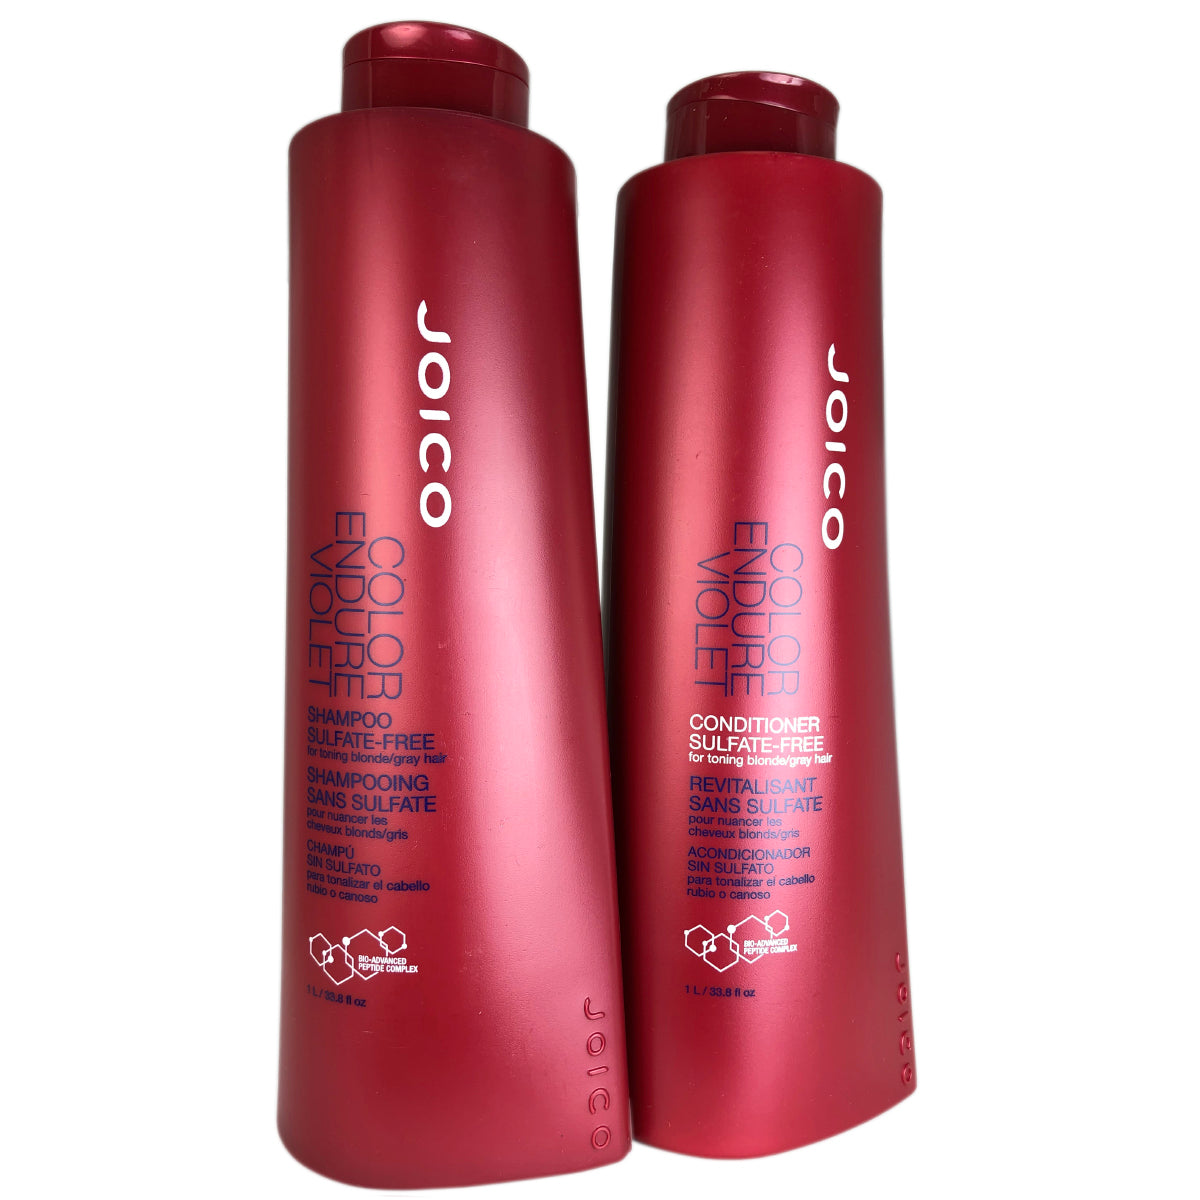 Joico Color Endure Violet Shampoo & Conditioner Liter Blonde Hair Keeper 33.8oz